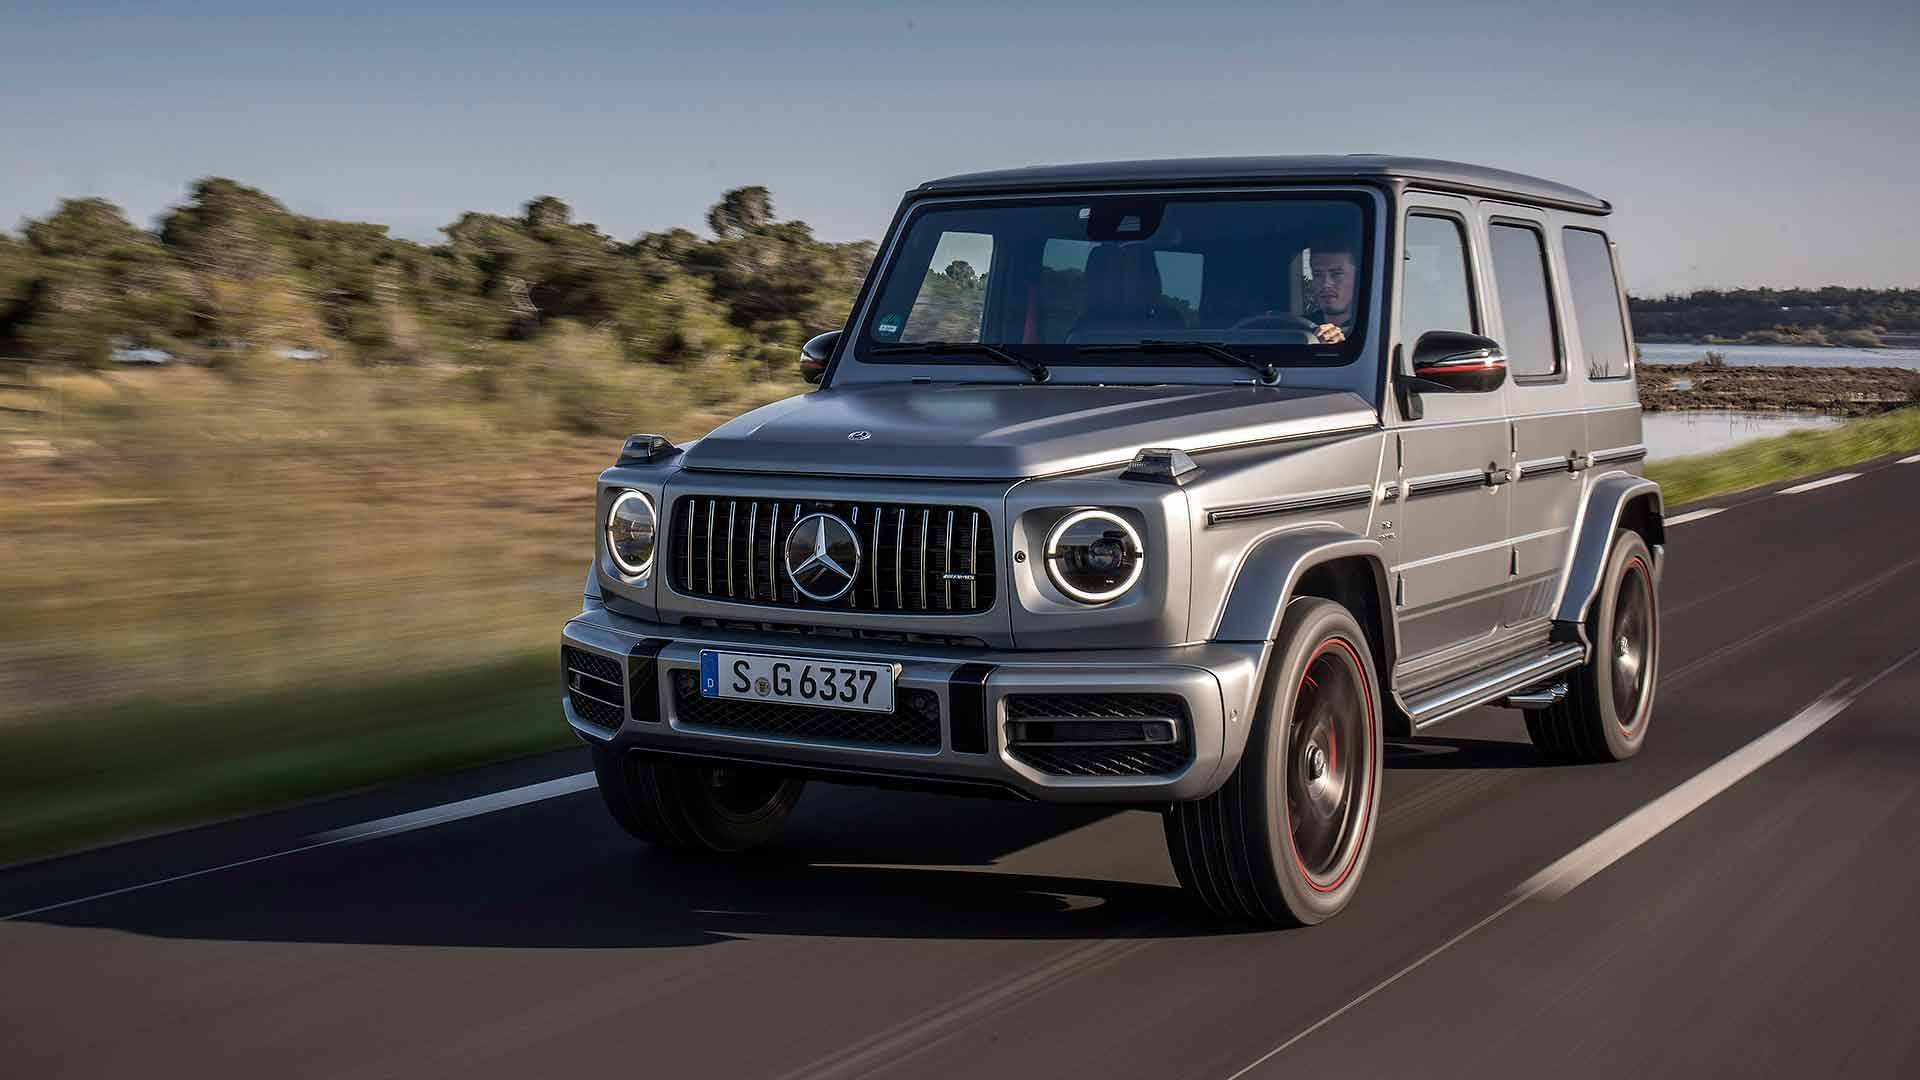 61 Best Review G63 Mercedes 2020 Price and Review with G63 Mercedes 2020